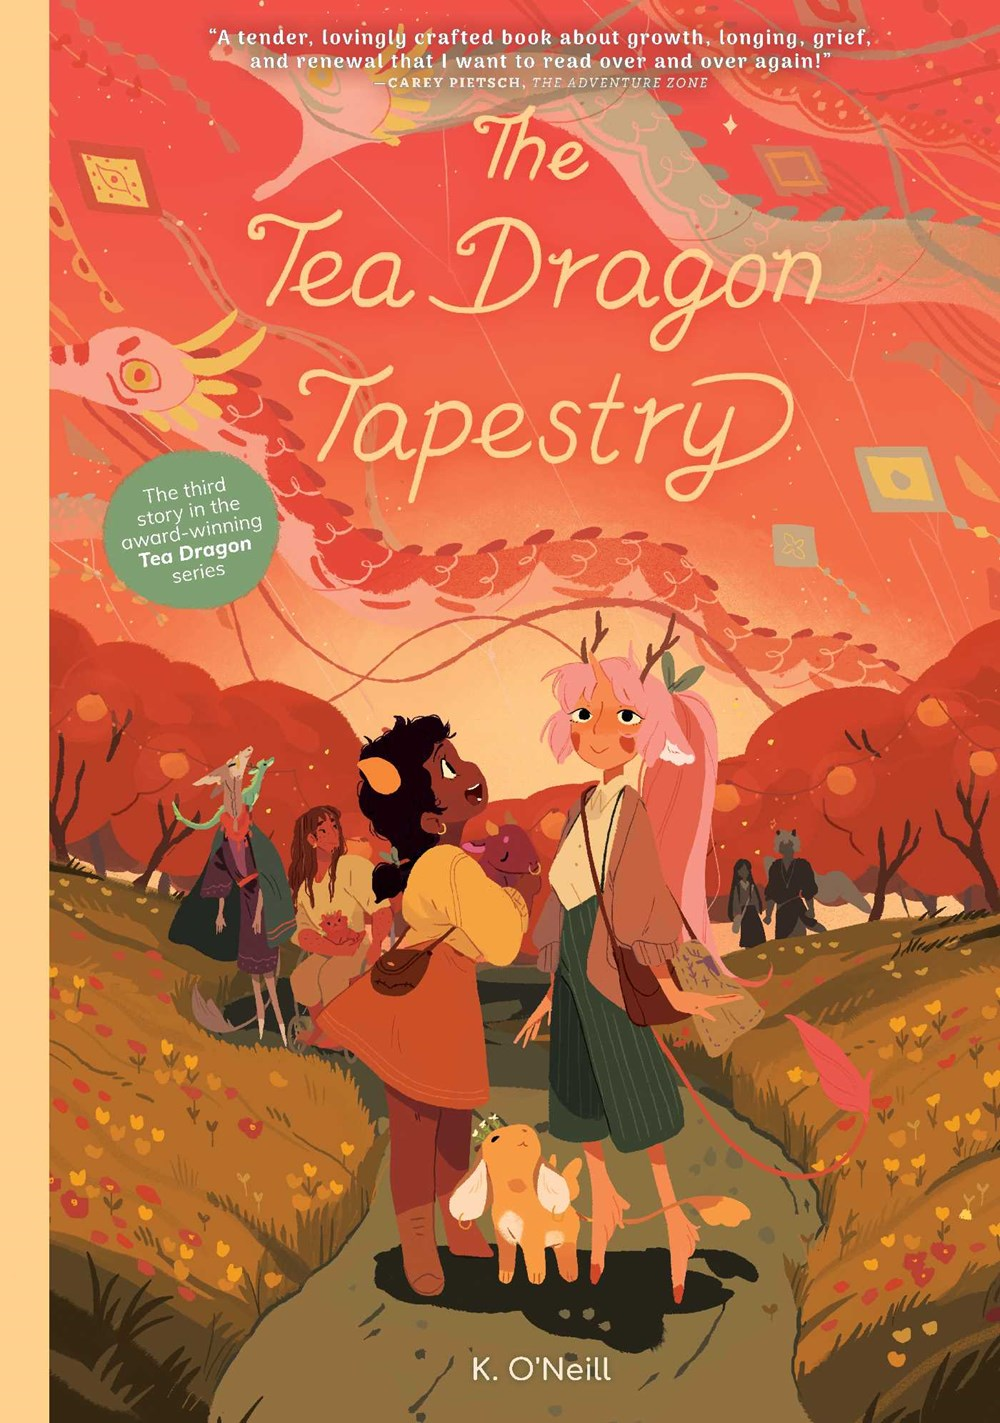 The Tea Dragon Tapestry by K. O'Neill